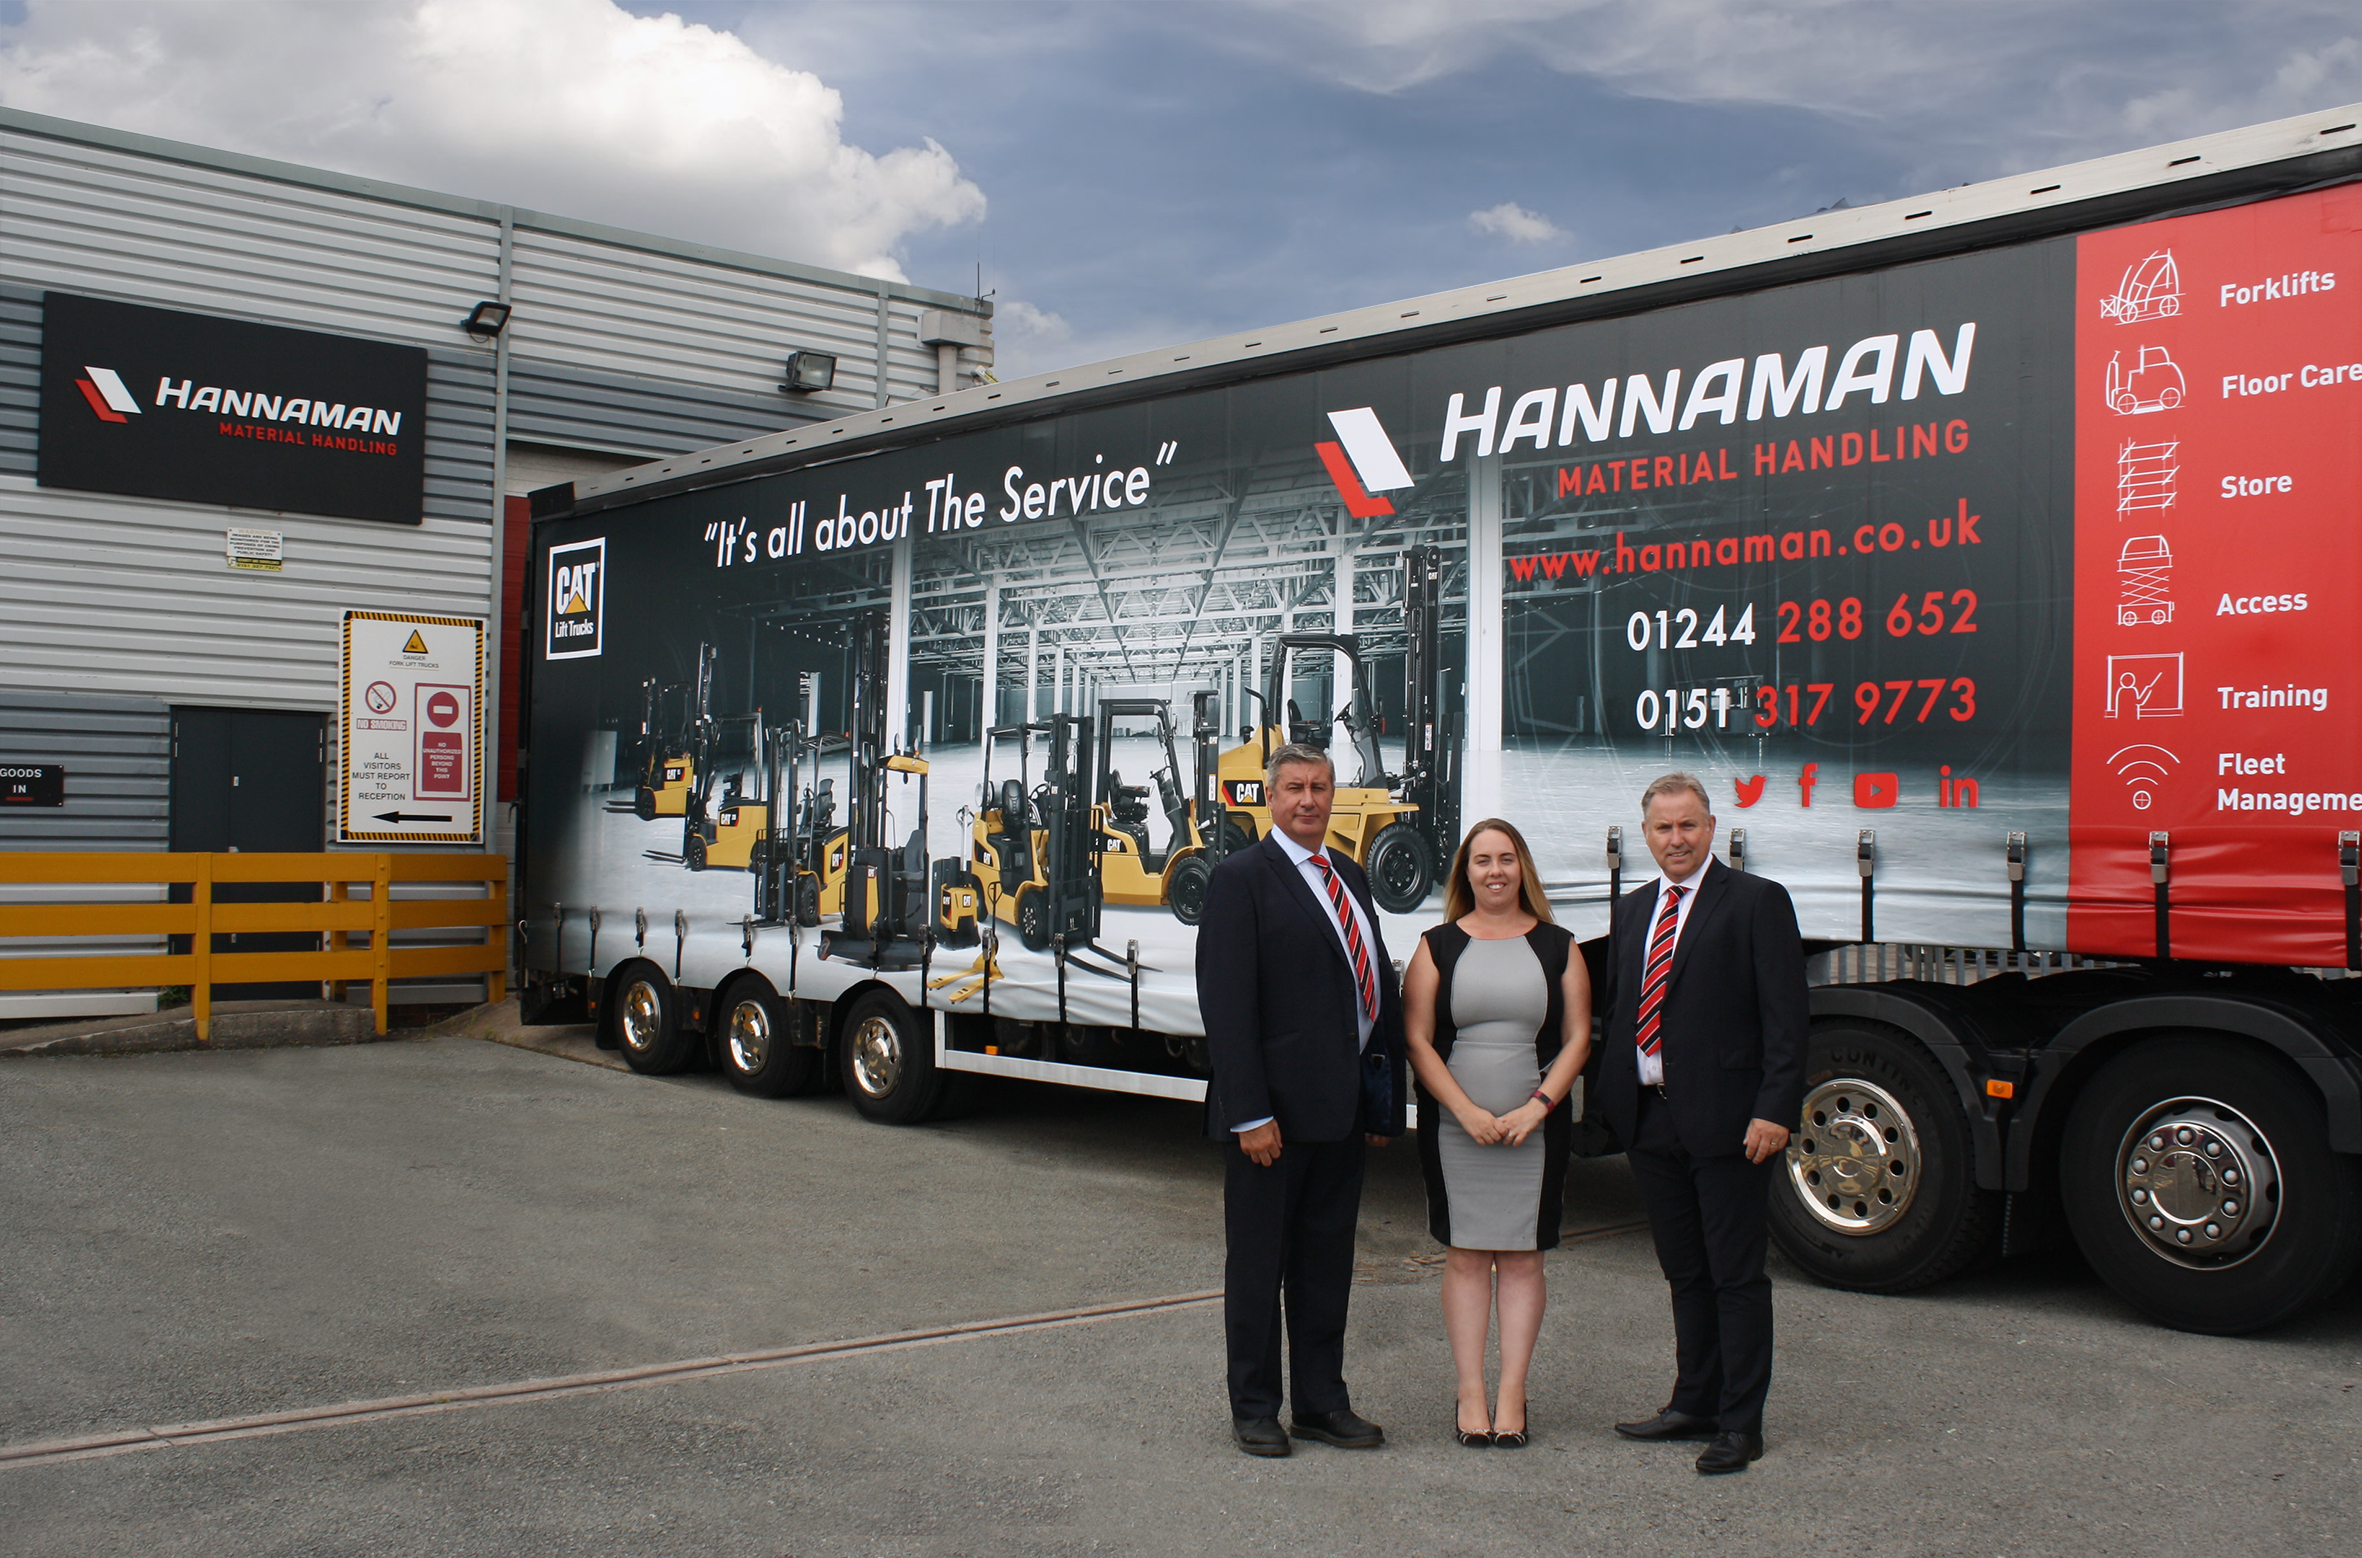 Hannaman management (from left) operations director David Brown, commercial director Stacey Downey-Jones and MD Steve Downey.